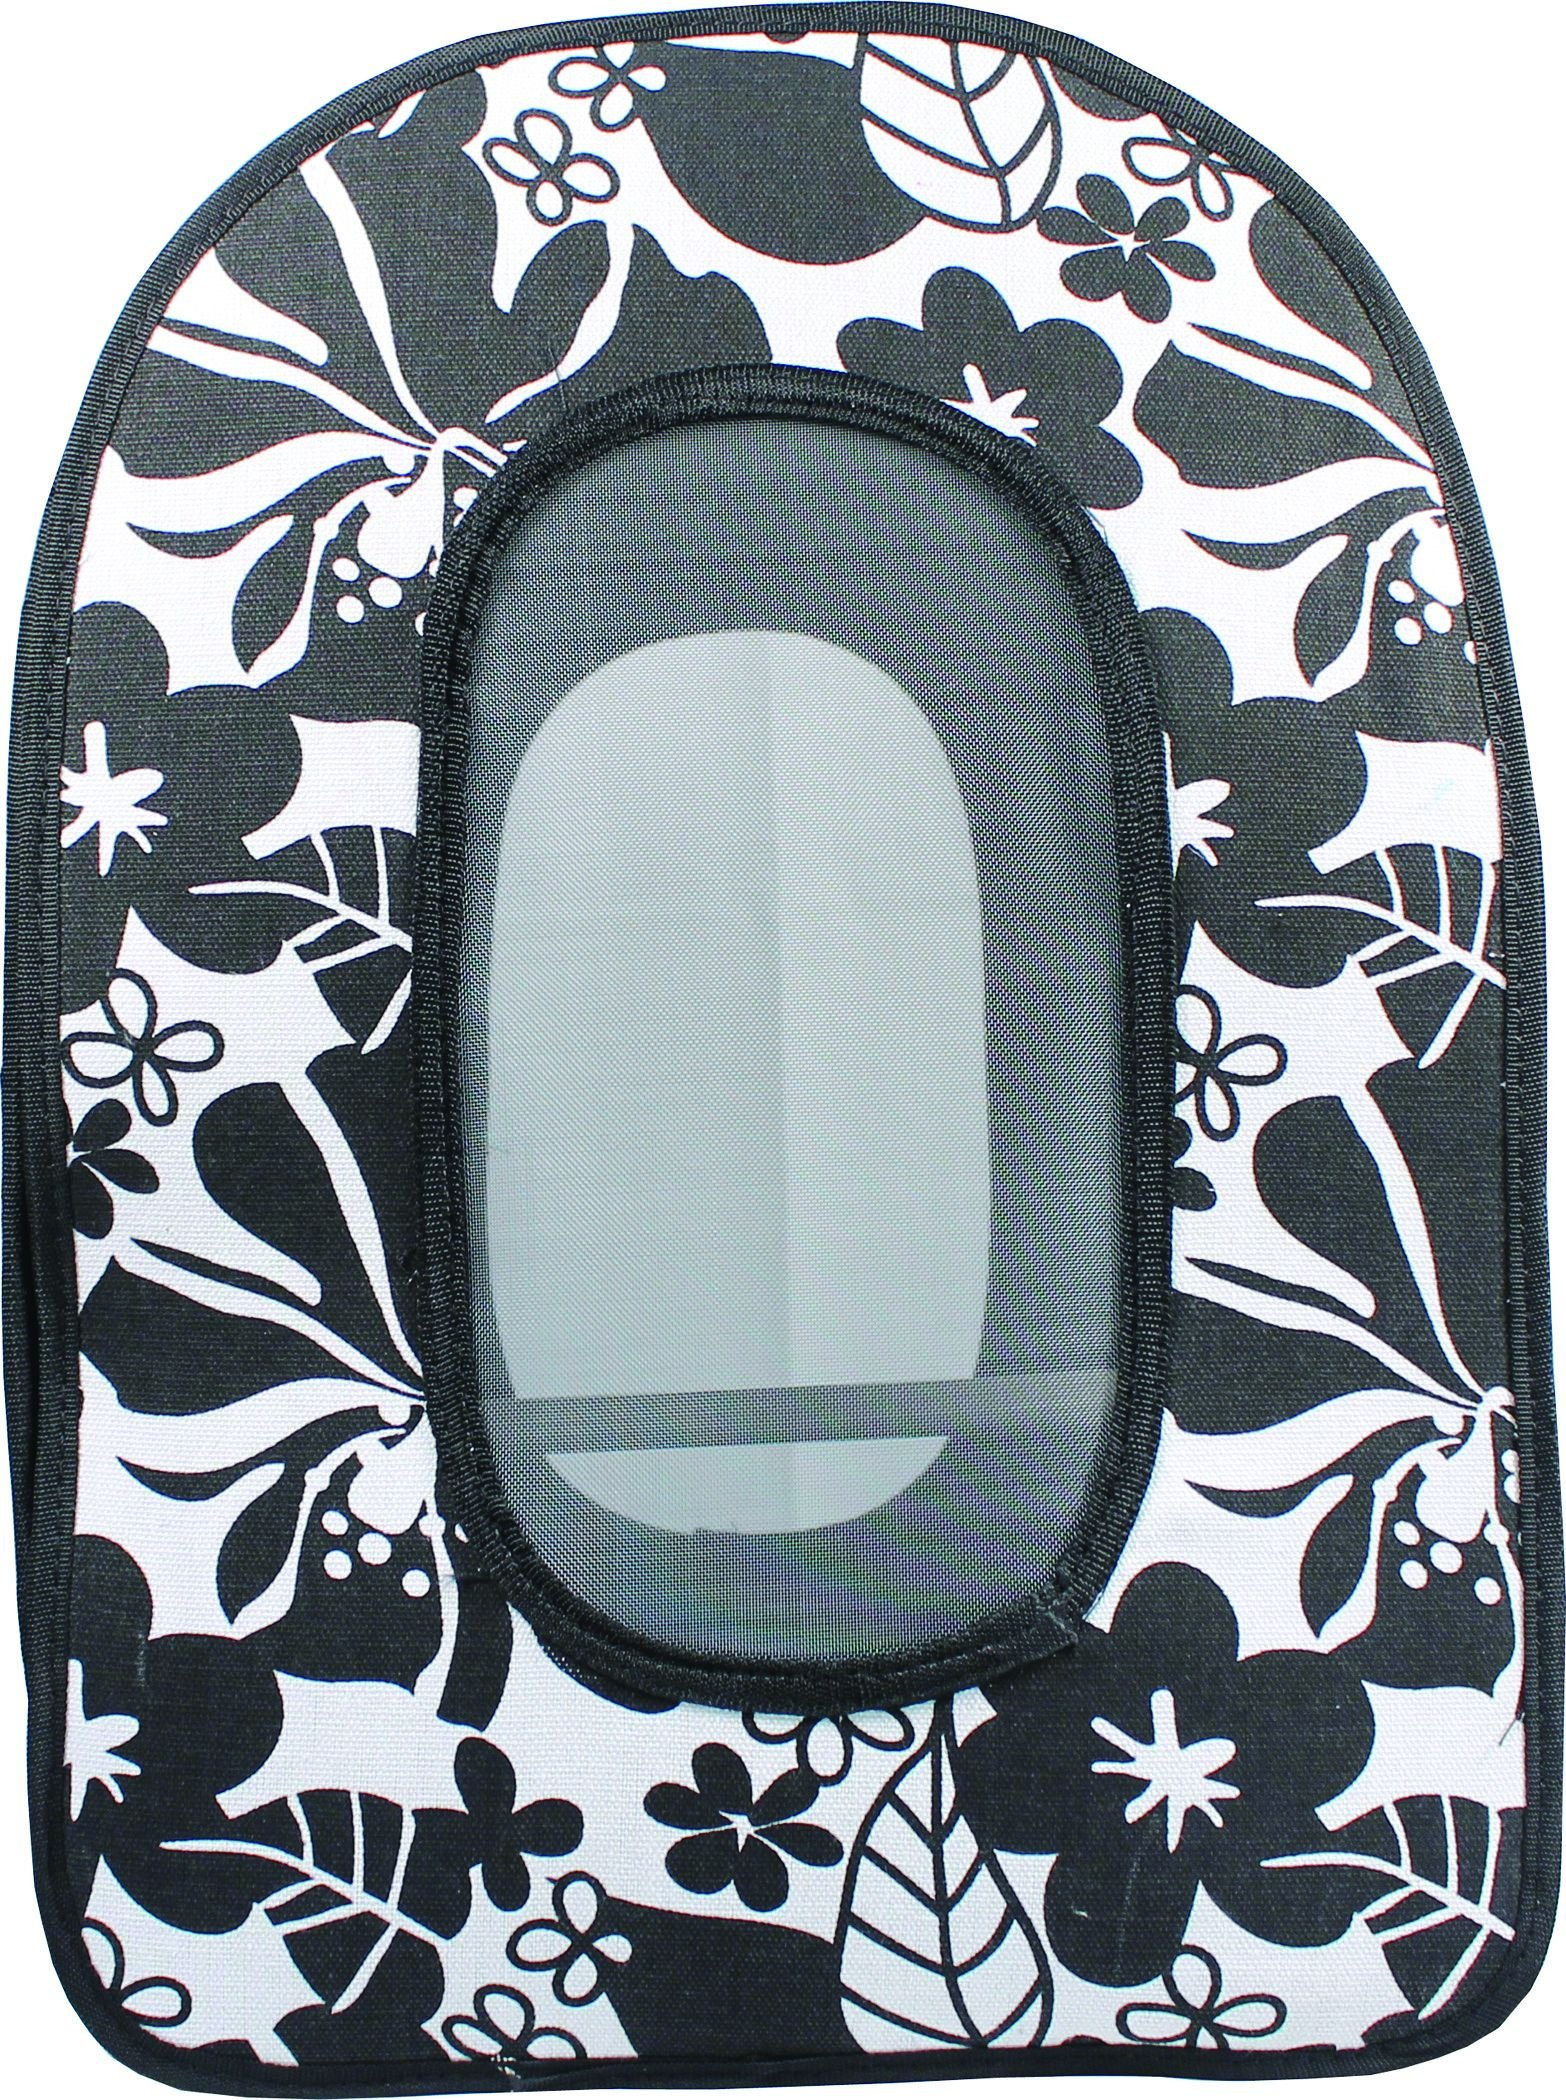 A&E Cage Company 001374 Black Happy Beaks Soft Sided Bird Travel Carrier, 13.5 x 9 x 18.5 (HB1506L Black)